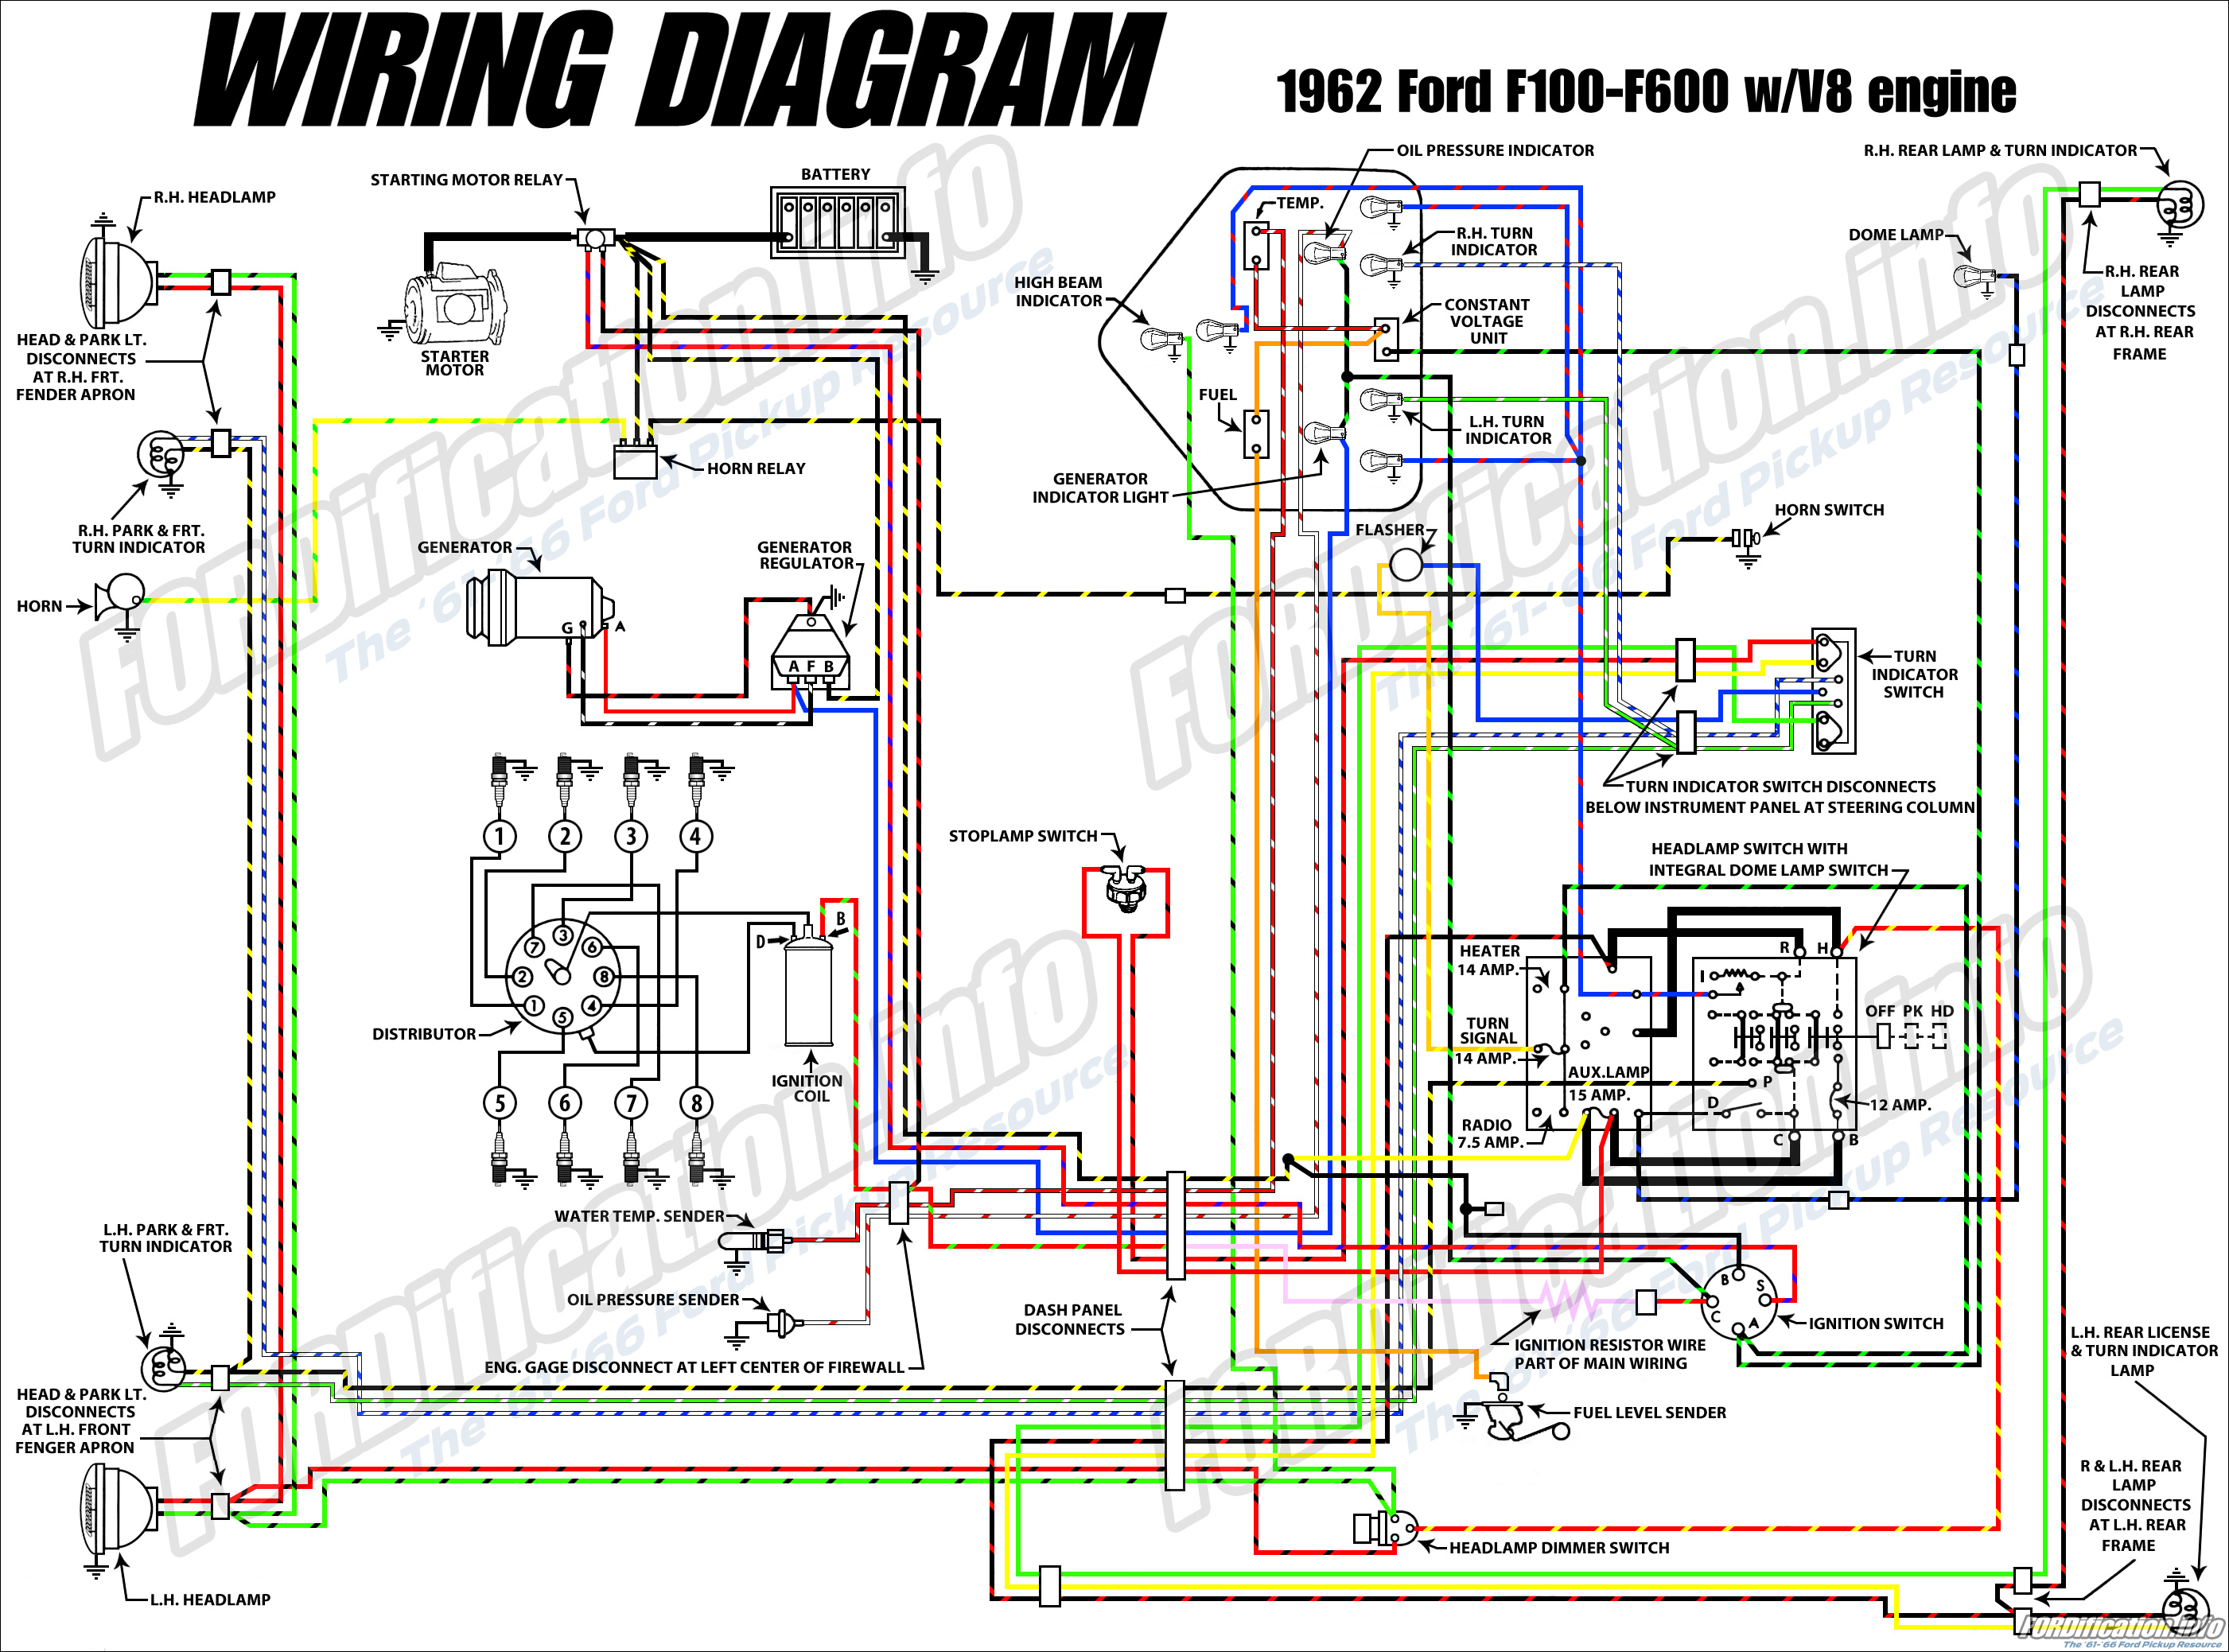 1962fordtruck_masterwiring 1962 ford truck wiring diagrams fordification info the '61 '66 ford truck wiring diagrams at gsmportal.co